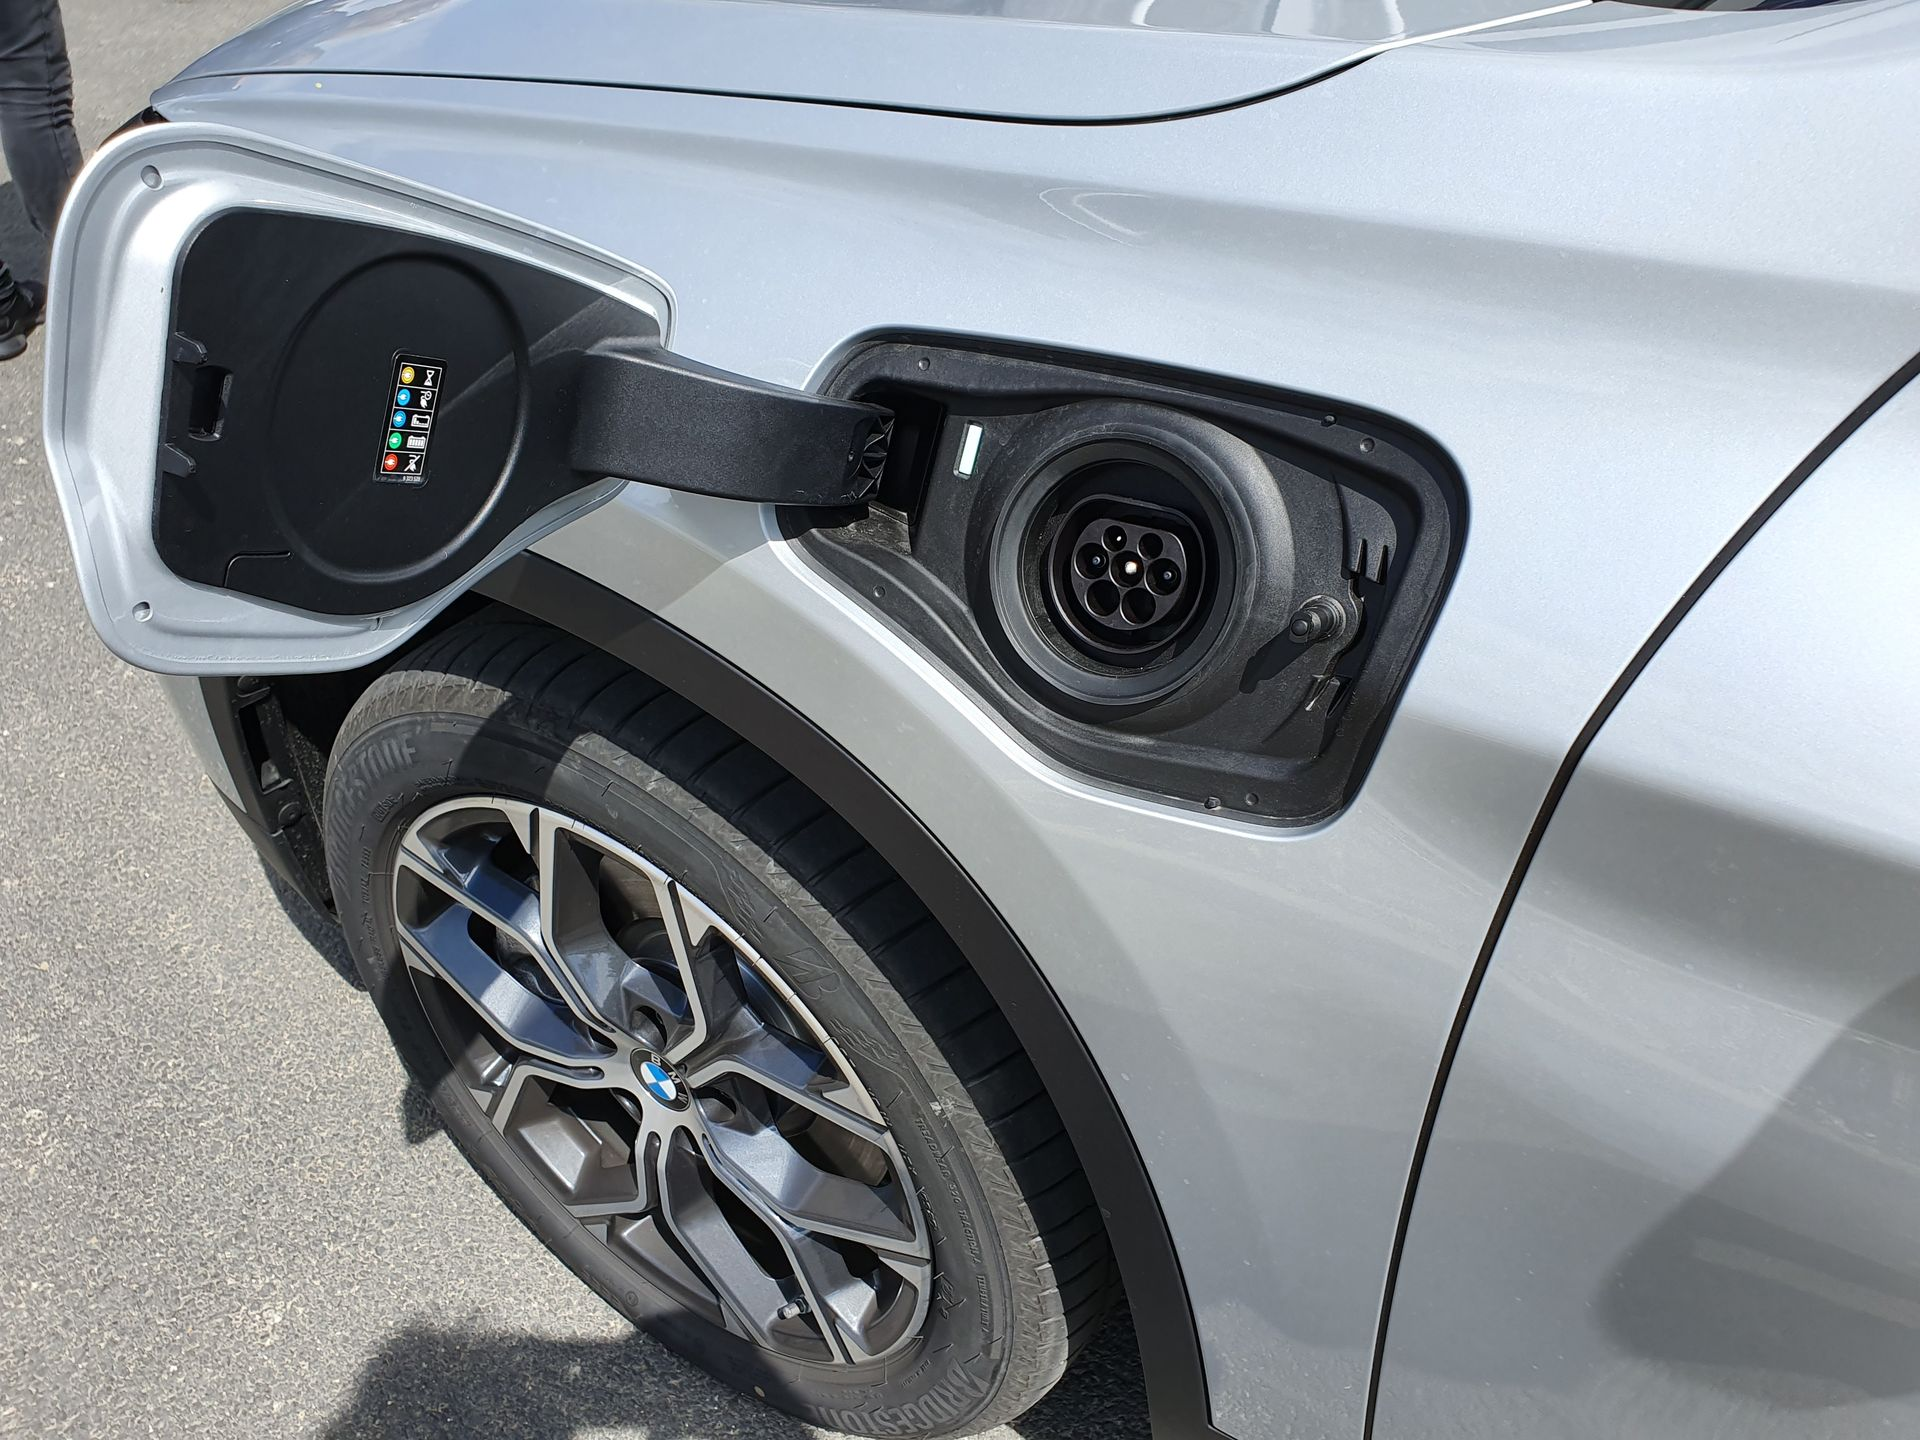 Prise recharge BMW X1 2020